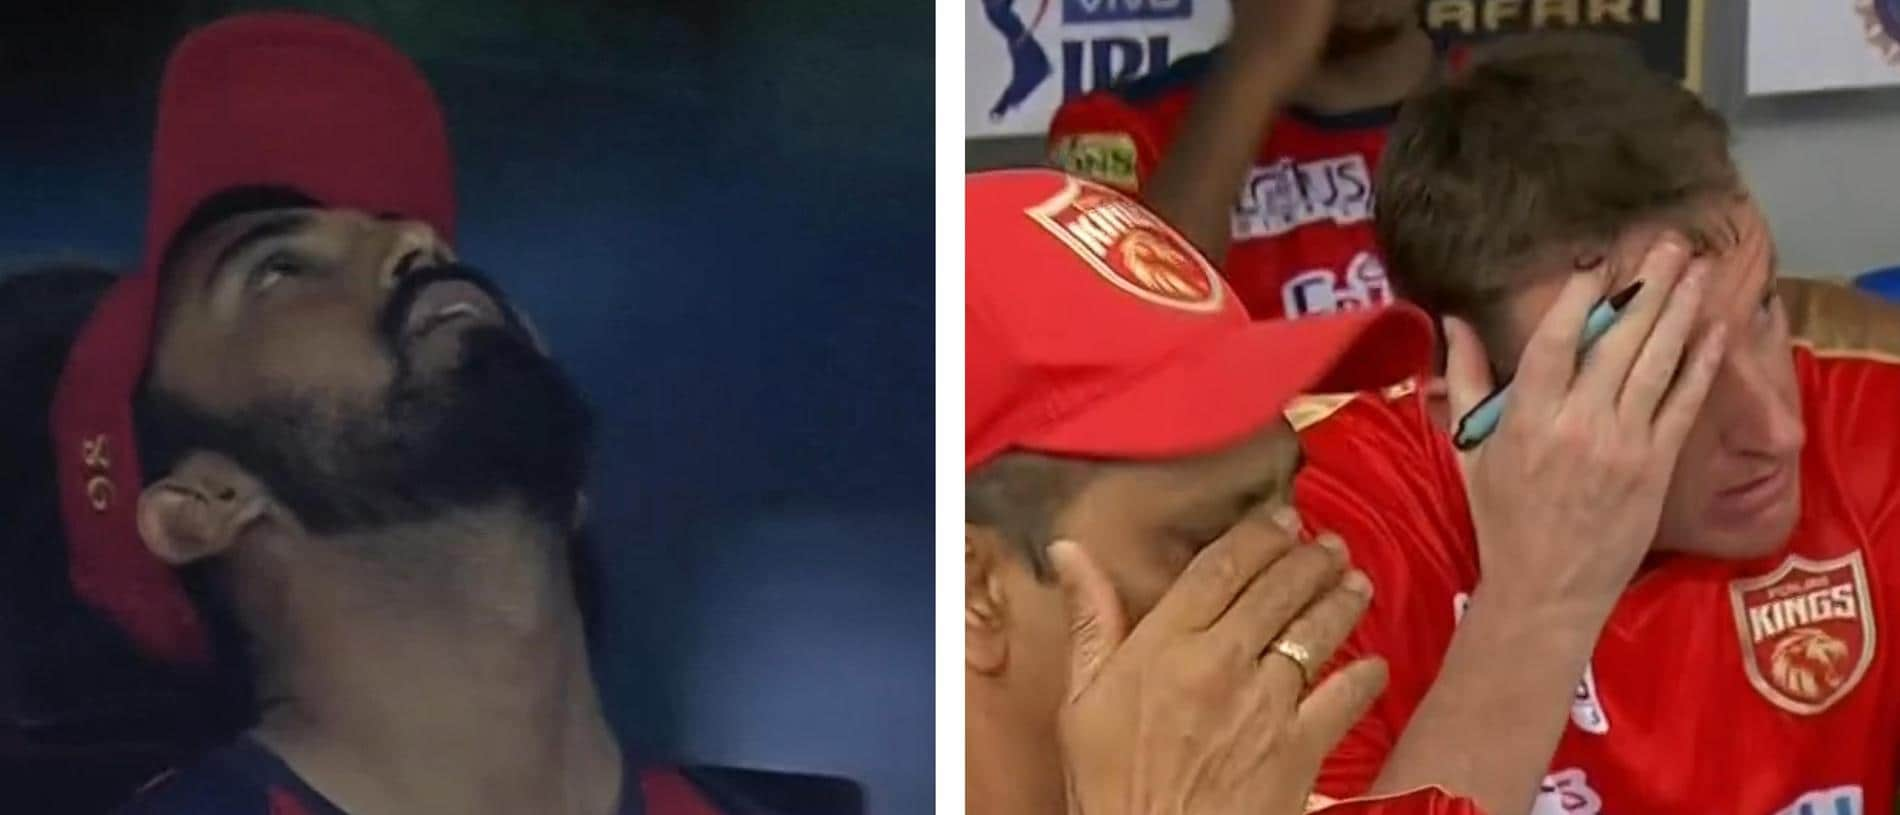 The Punjab Kings were stunned after collapsing in an all-time choke.